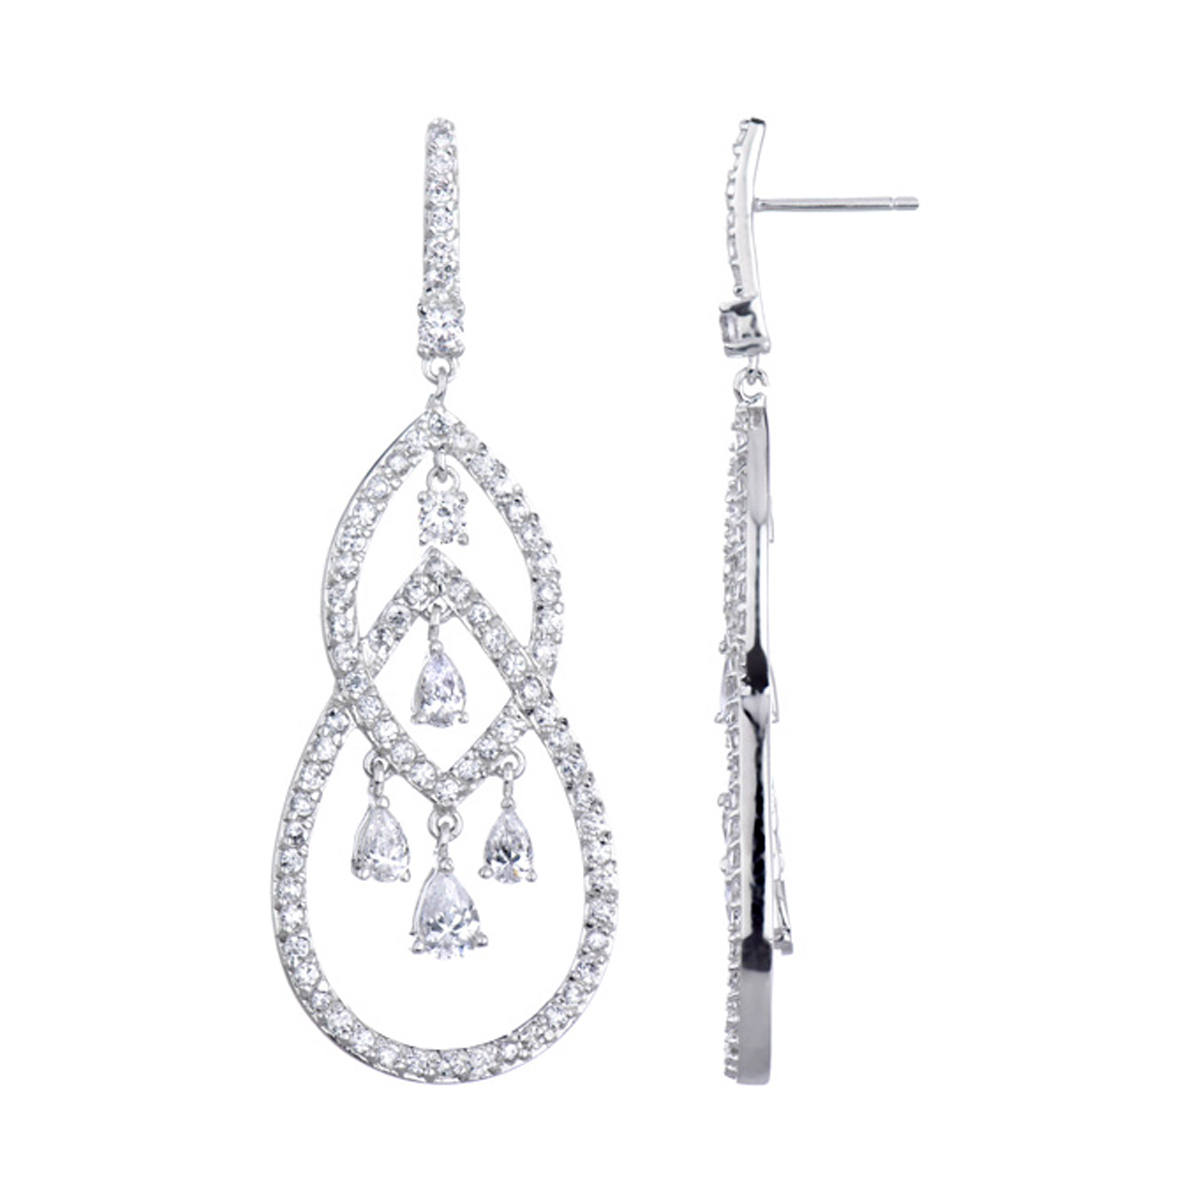 Bridesmaid Earrings Boisseau Pear CZ Chandelier Earrings – Cz Chandelier Earrings